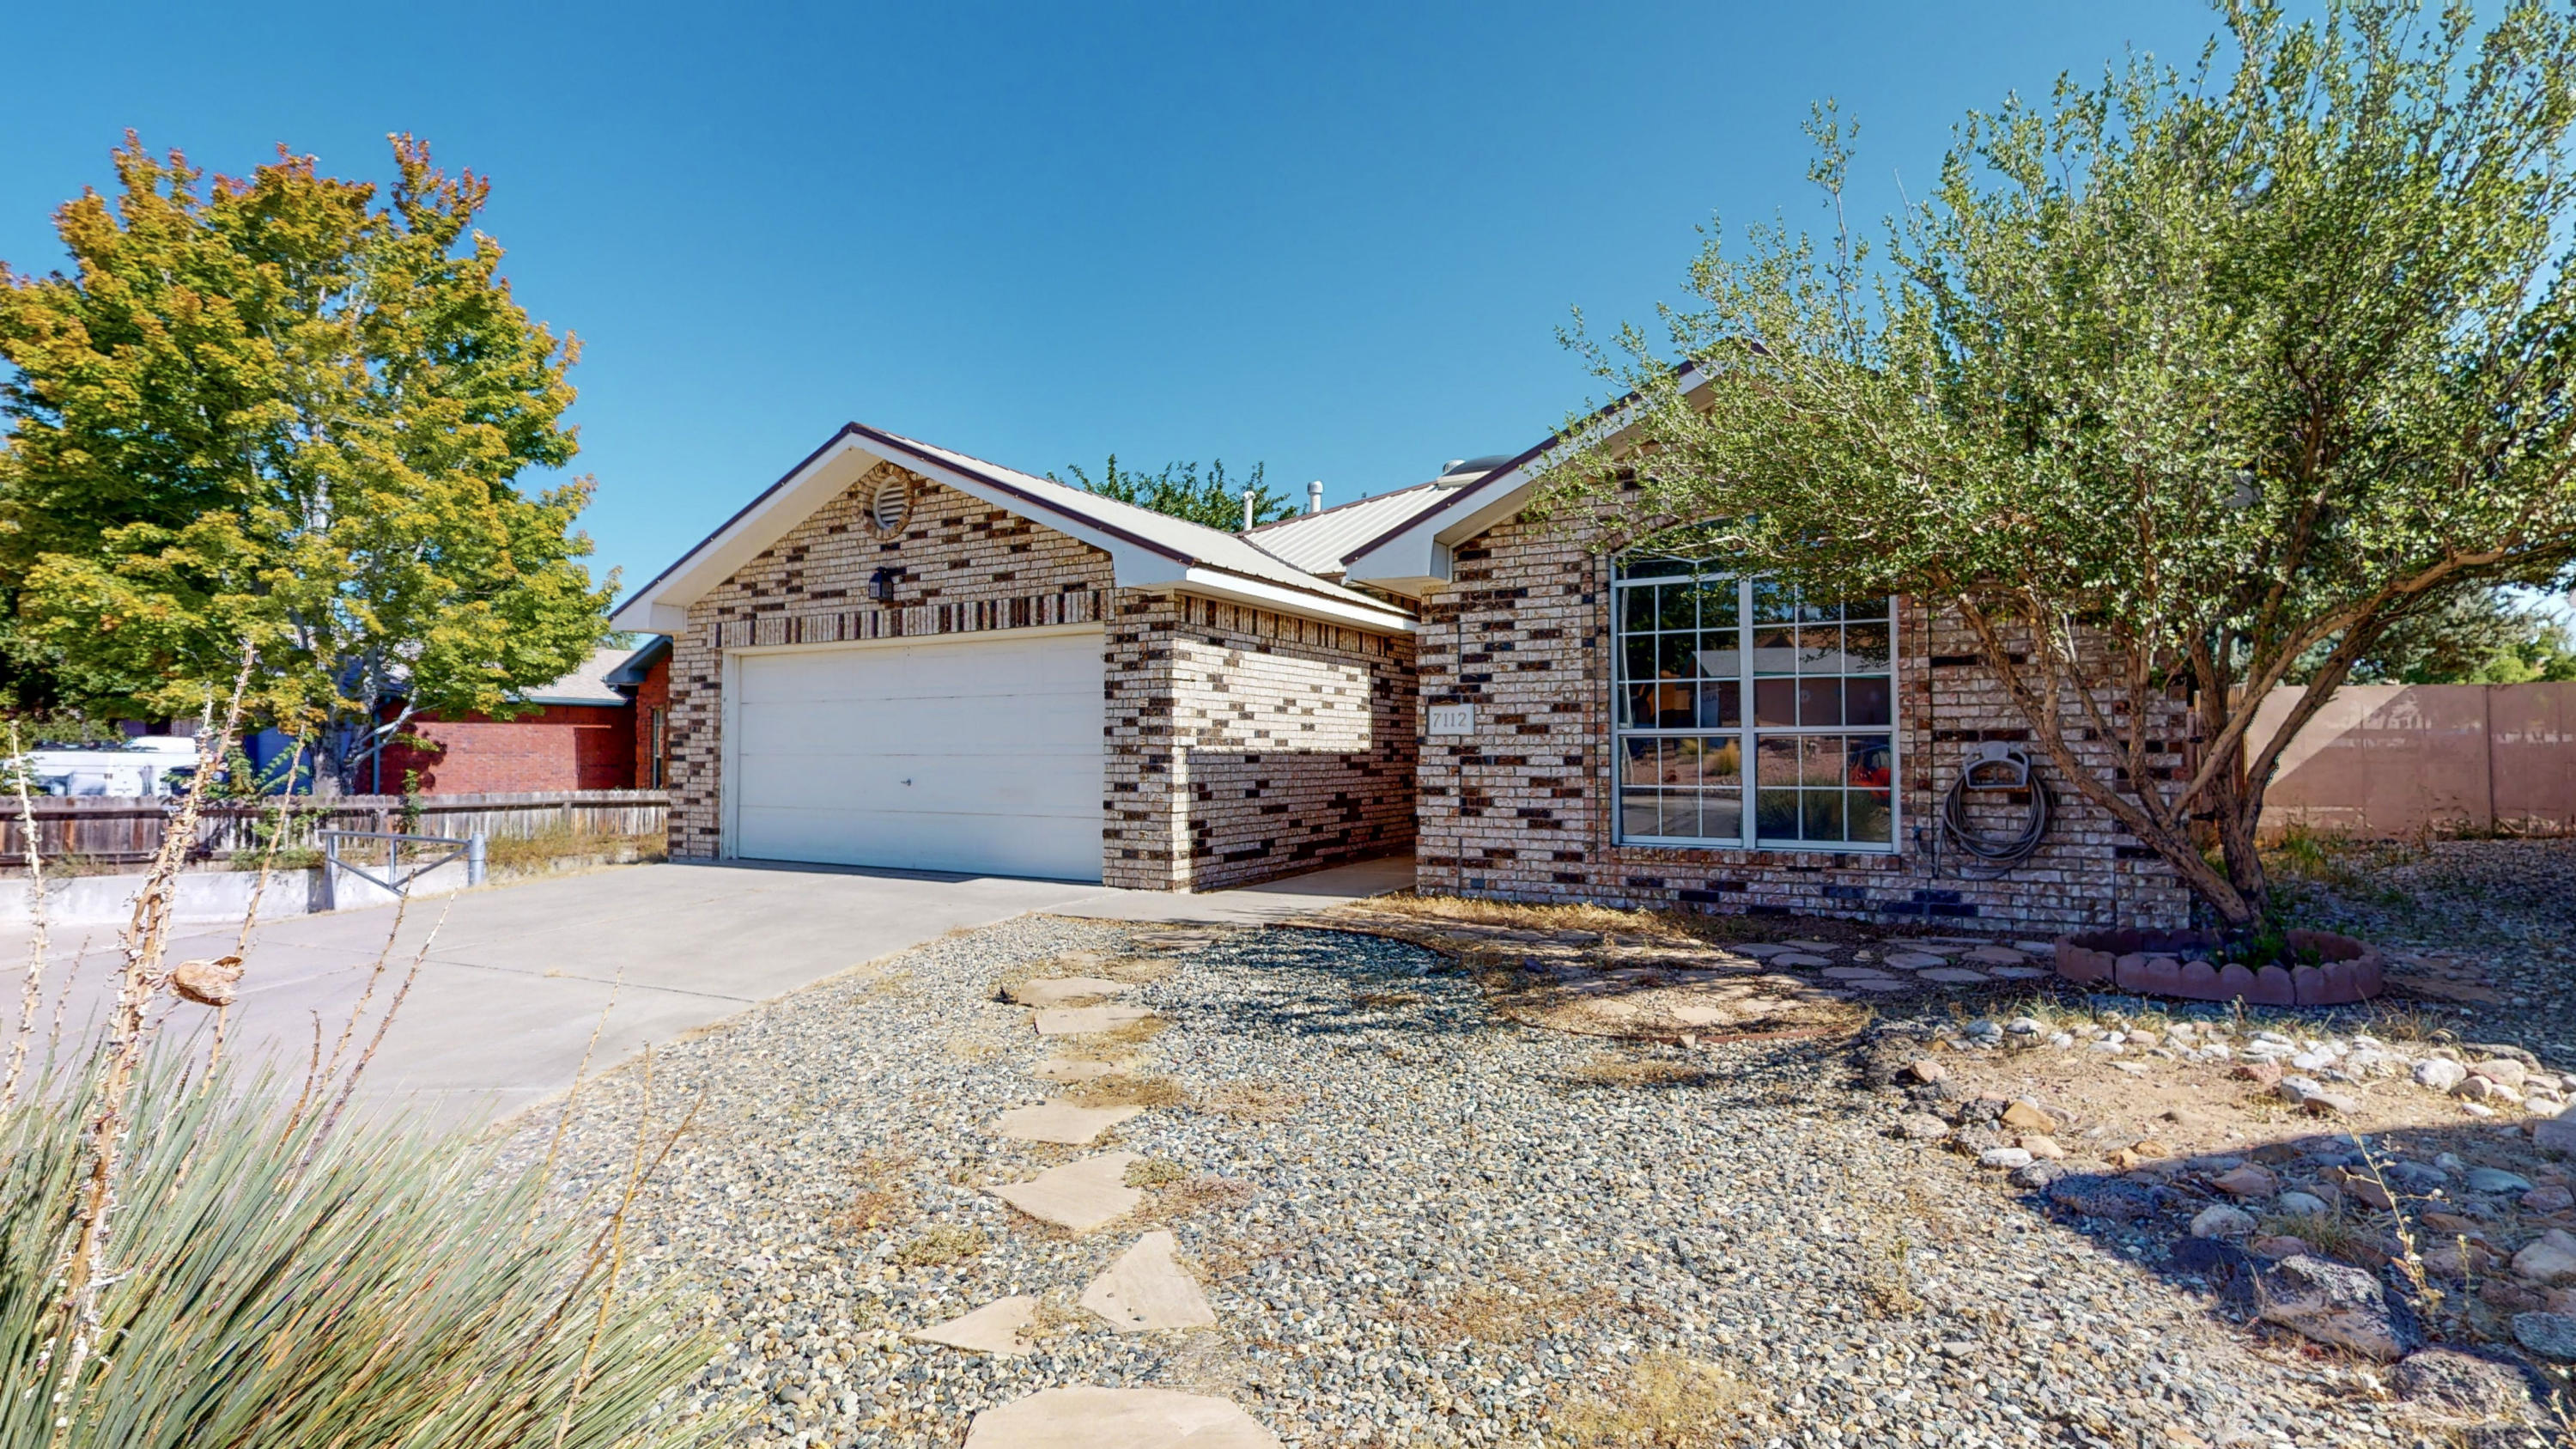 Multiple offers received!! OPEN HOUSE Sat 9/5 1pm - 4pm .This Opal Jenkins Gem in Taylor Ranch features a Metal Roof, Brick Exterior, and some Xeriscape. Walk in and find the Raised Ceilings and Open Living Area with tons of Natural Light from Large Windows & Skylights, along with a Gas Fireplace with Wood Mantel above. As you continue on in the home, you will find a Galley Kitchen that features Stainless Steel Appliances and Granite Countertops with Tile Backsplash. Master Bedroom is stacked with Vaulted Pitch and Ensuite with Double Vanity, Tile Surround Bath, and Large Walk In Closet. You will find Tile Flooring Throughout Excluding your 2nd & 3rd bedroom which features carpet. upgrades include a Newer Refrigerated Air & Furnace, Water Heater, and Dishwasher. Schedule to TOUR today!